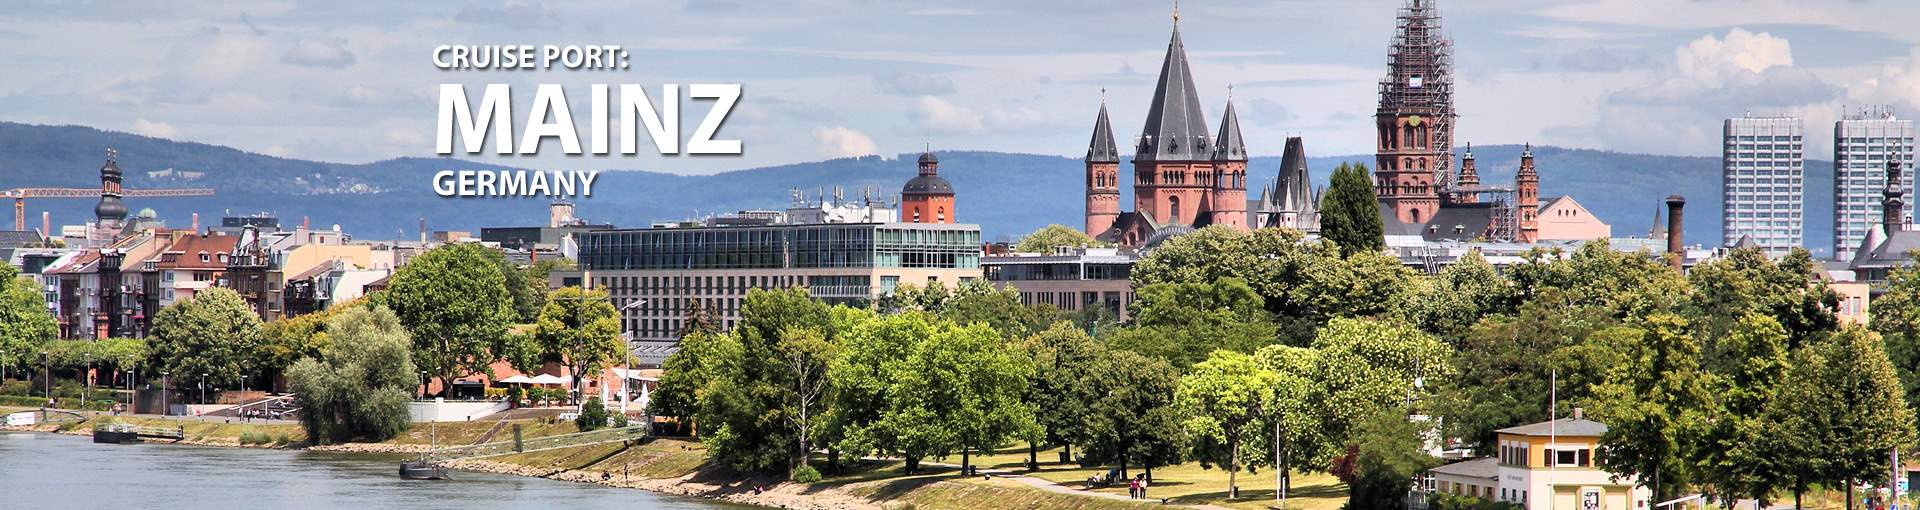 Cruises to Mainz, Germany